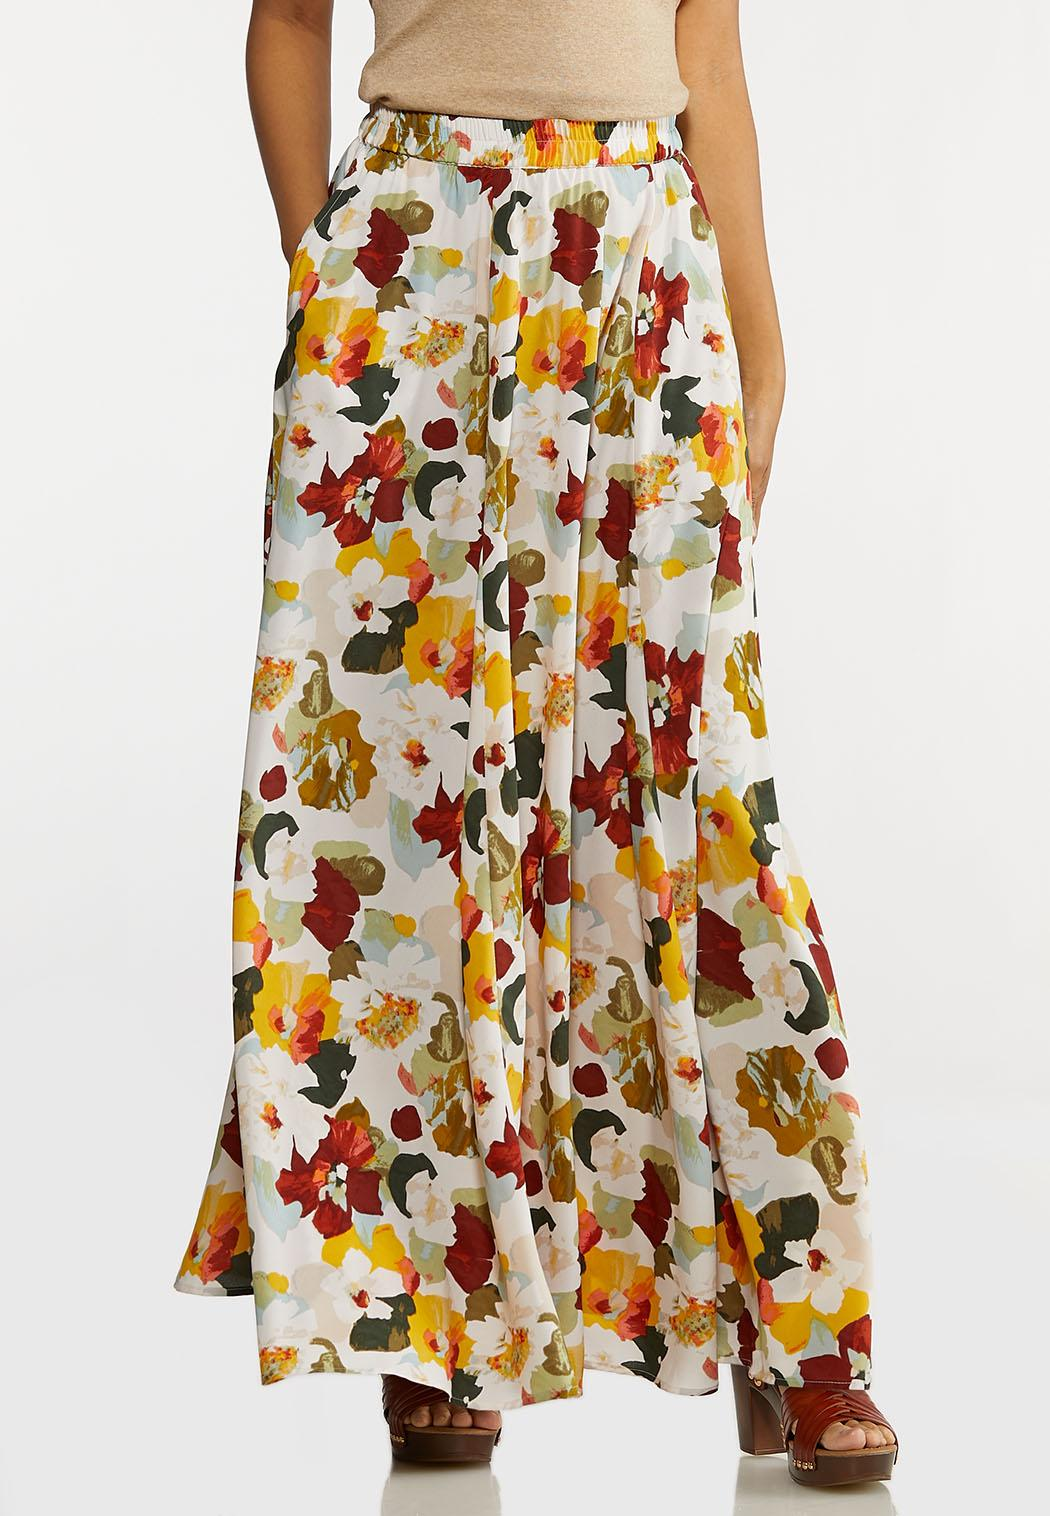 Painted Floral Skirt